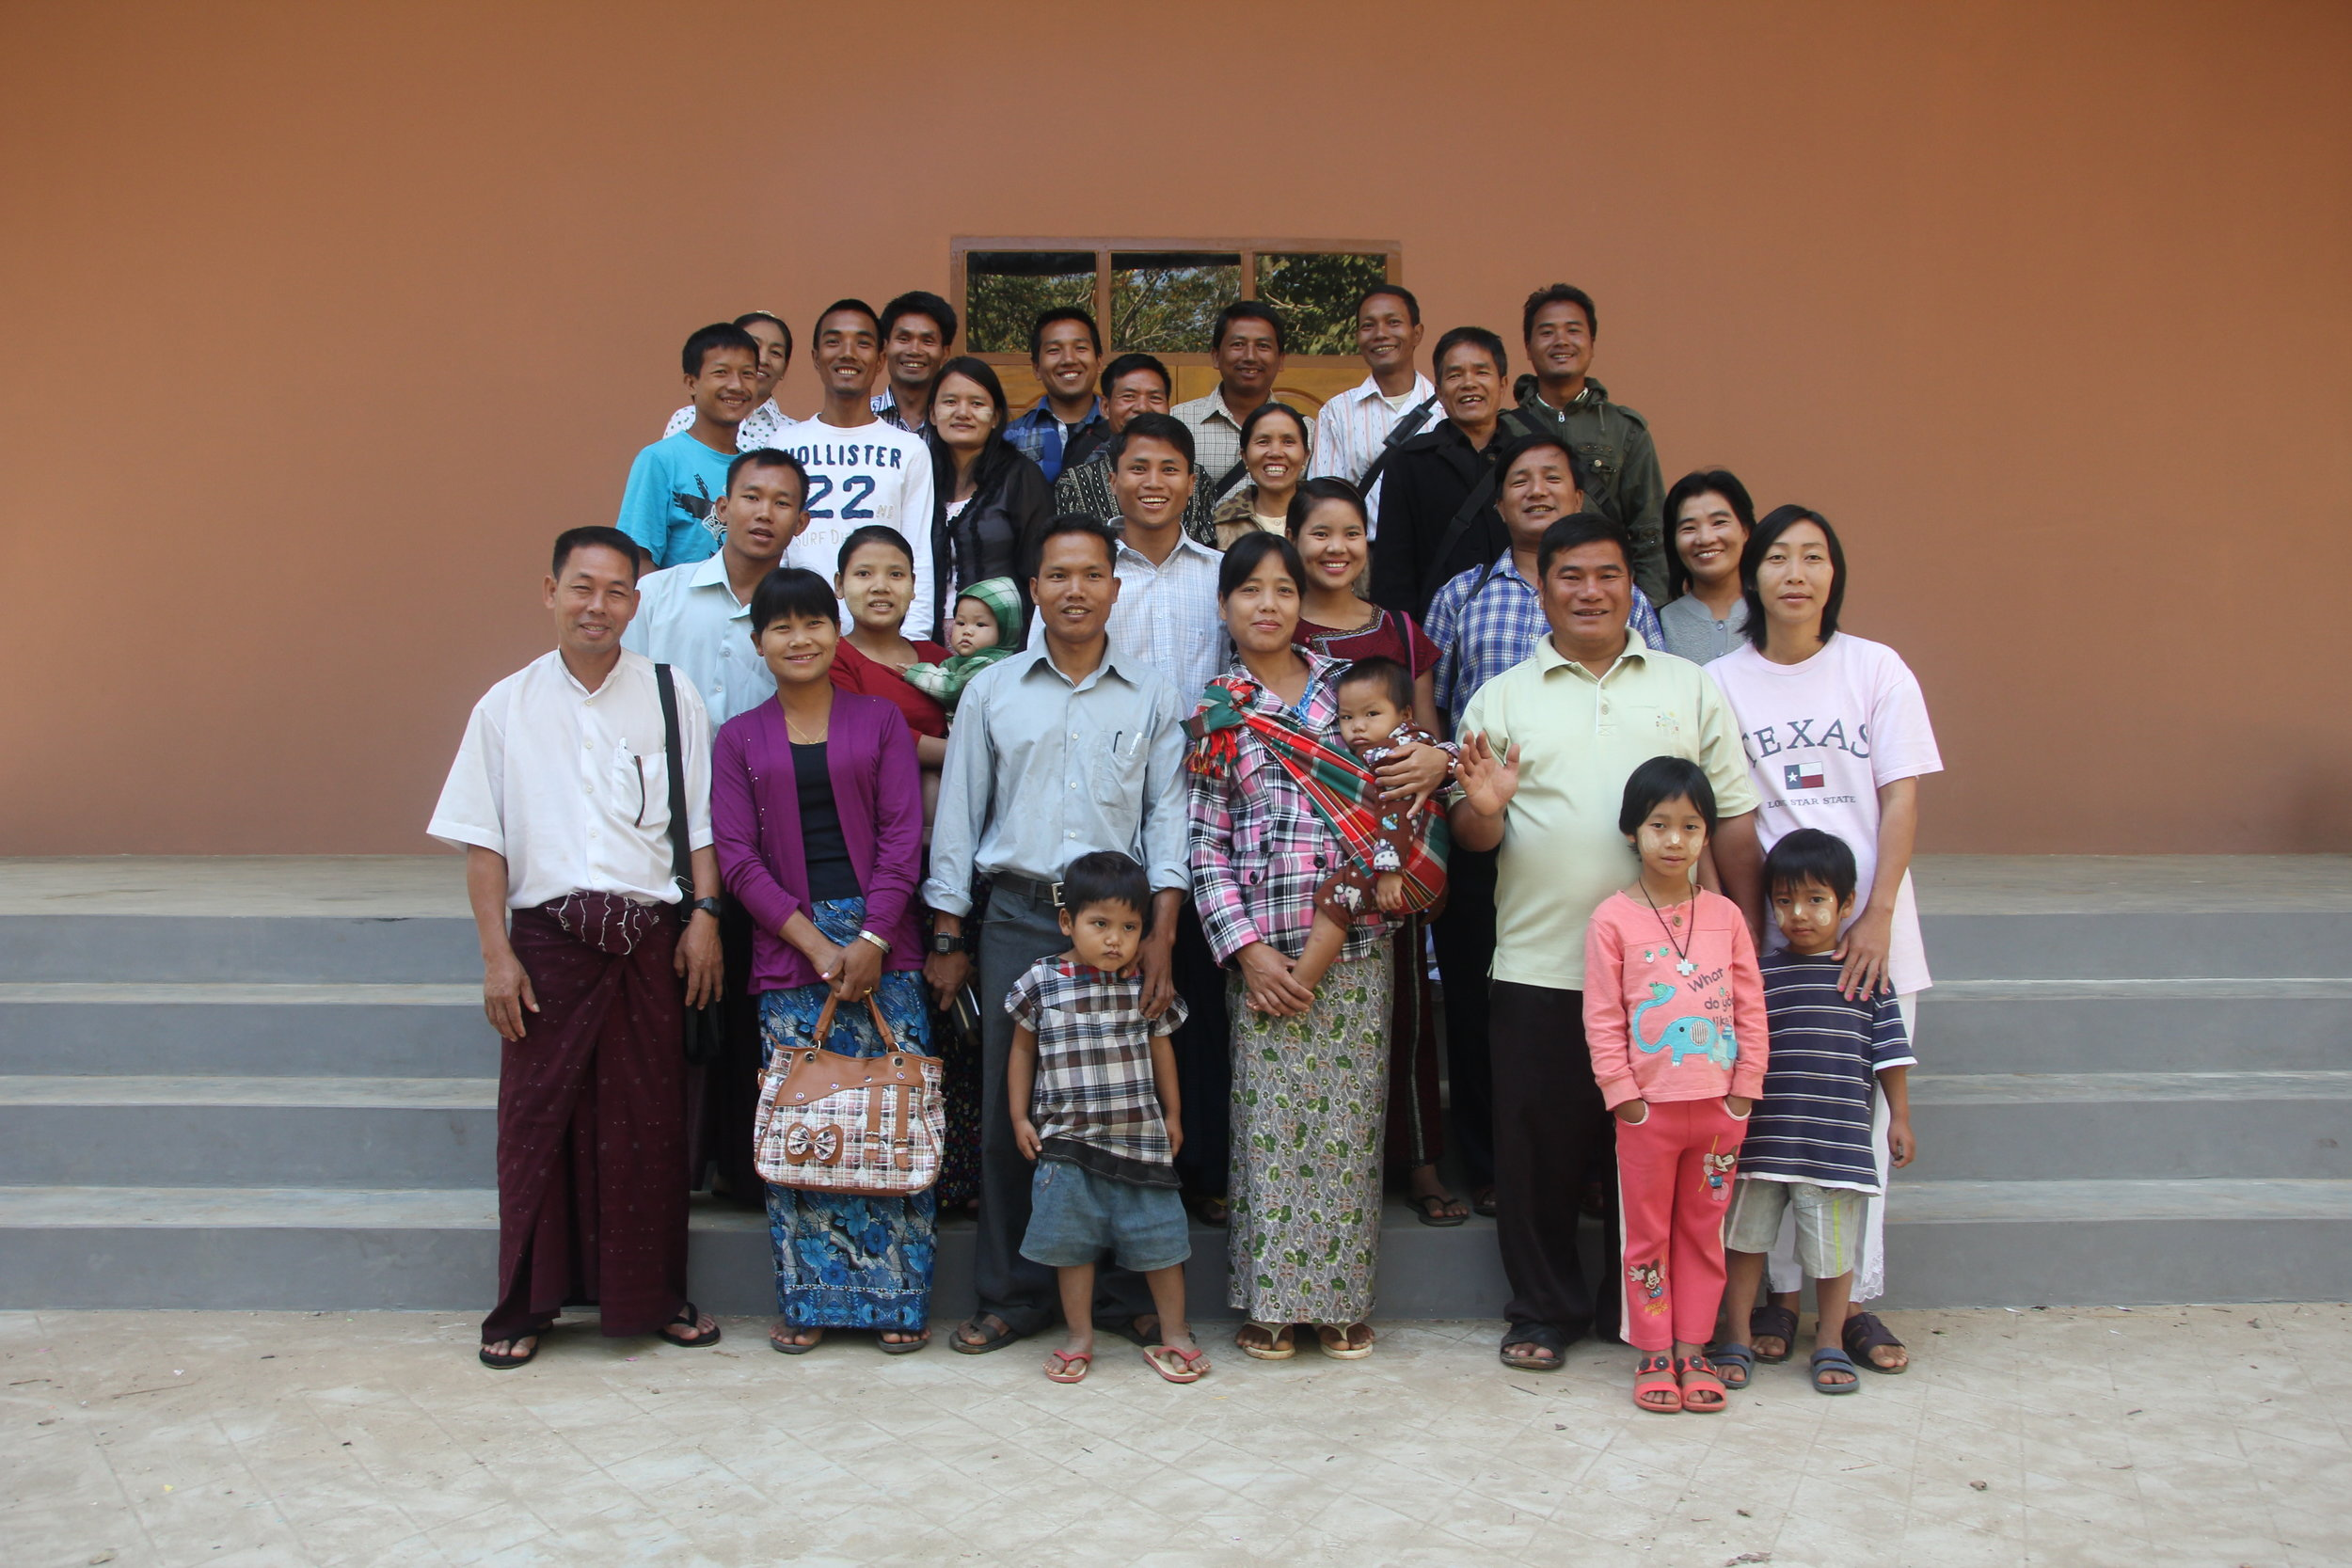 Church planters from Myanmar